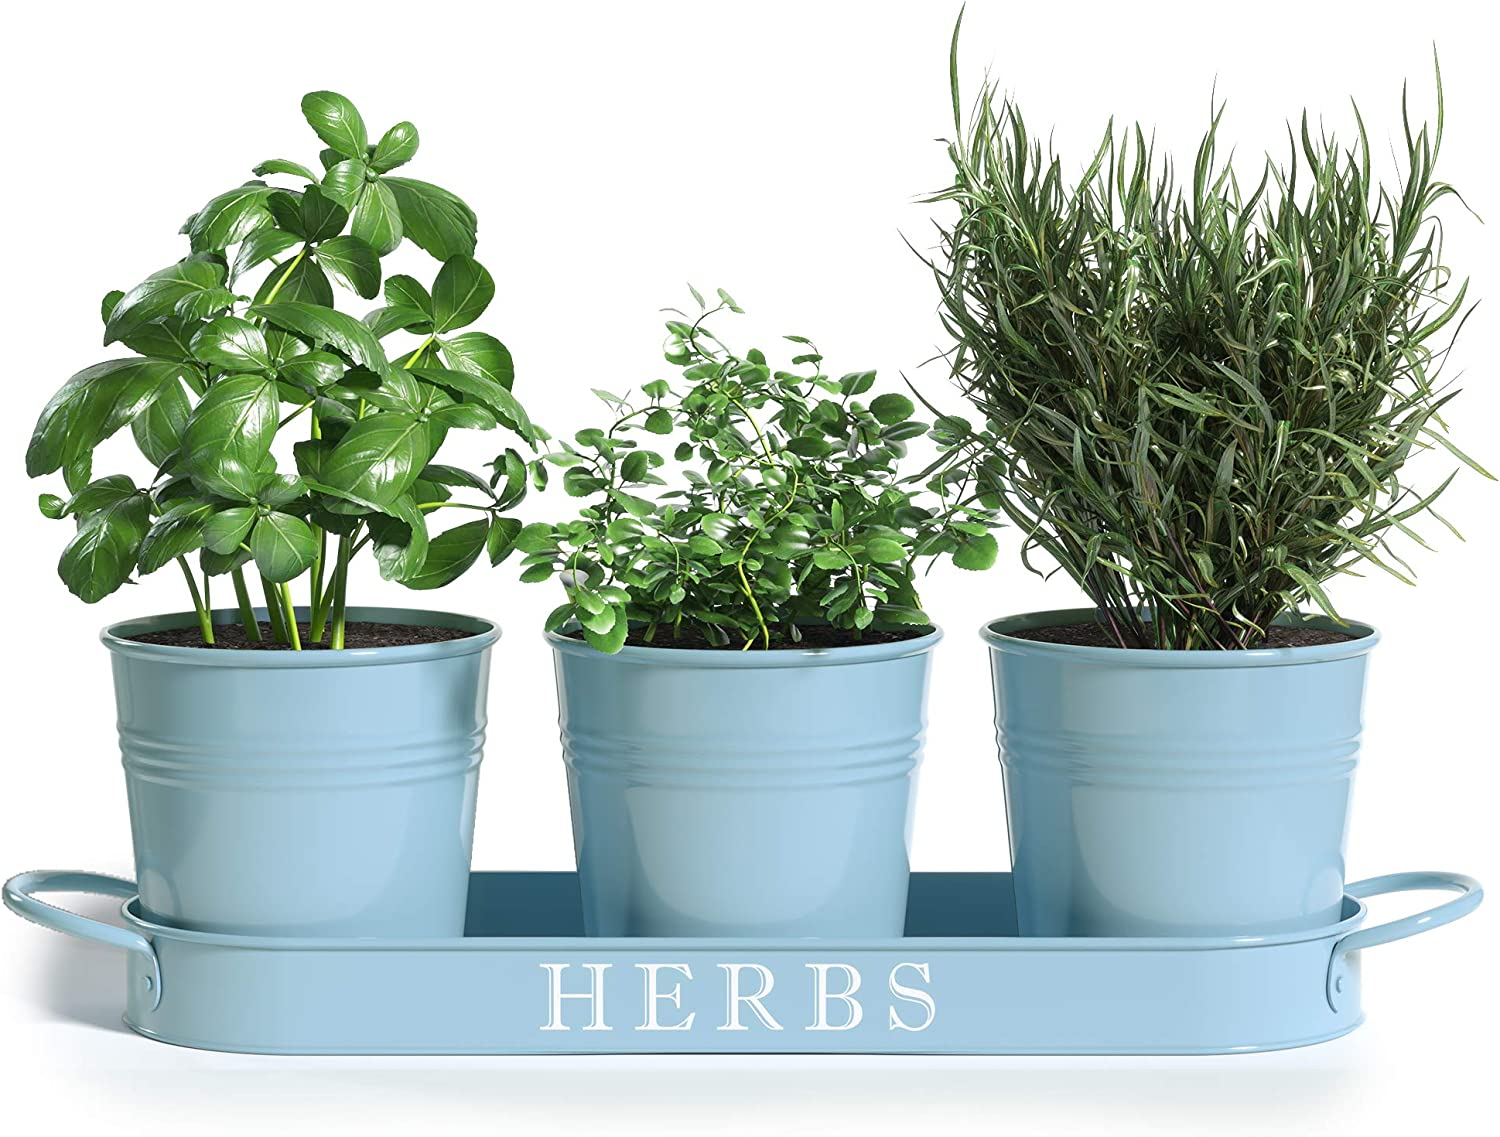 """Barnyard Designs Herb Pot Planter Set with Tray for Indoor Garden or Outdoor Use, Seafoam Blue Metal Succulent Potted Planters for Kitchen Windowsill, (Set of 3, 4.25""""x 4"""" Planters on 12.5""""x 4"""